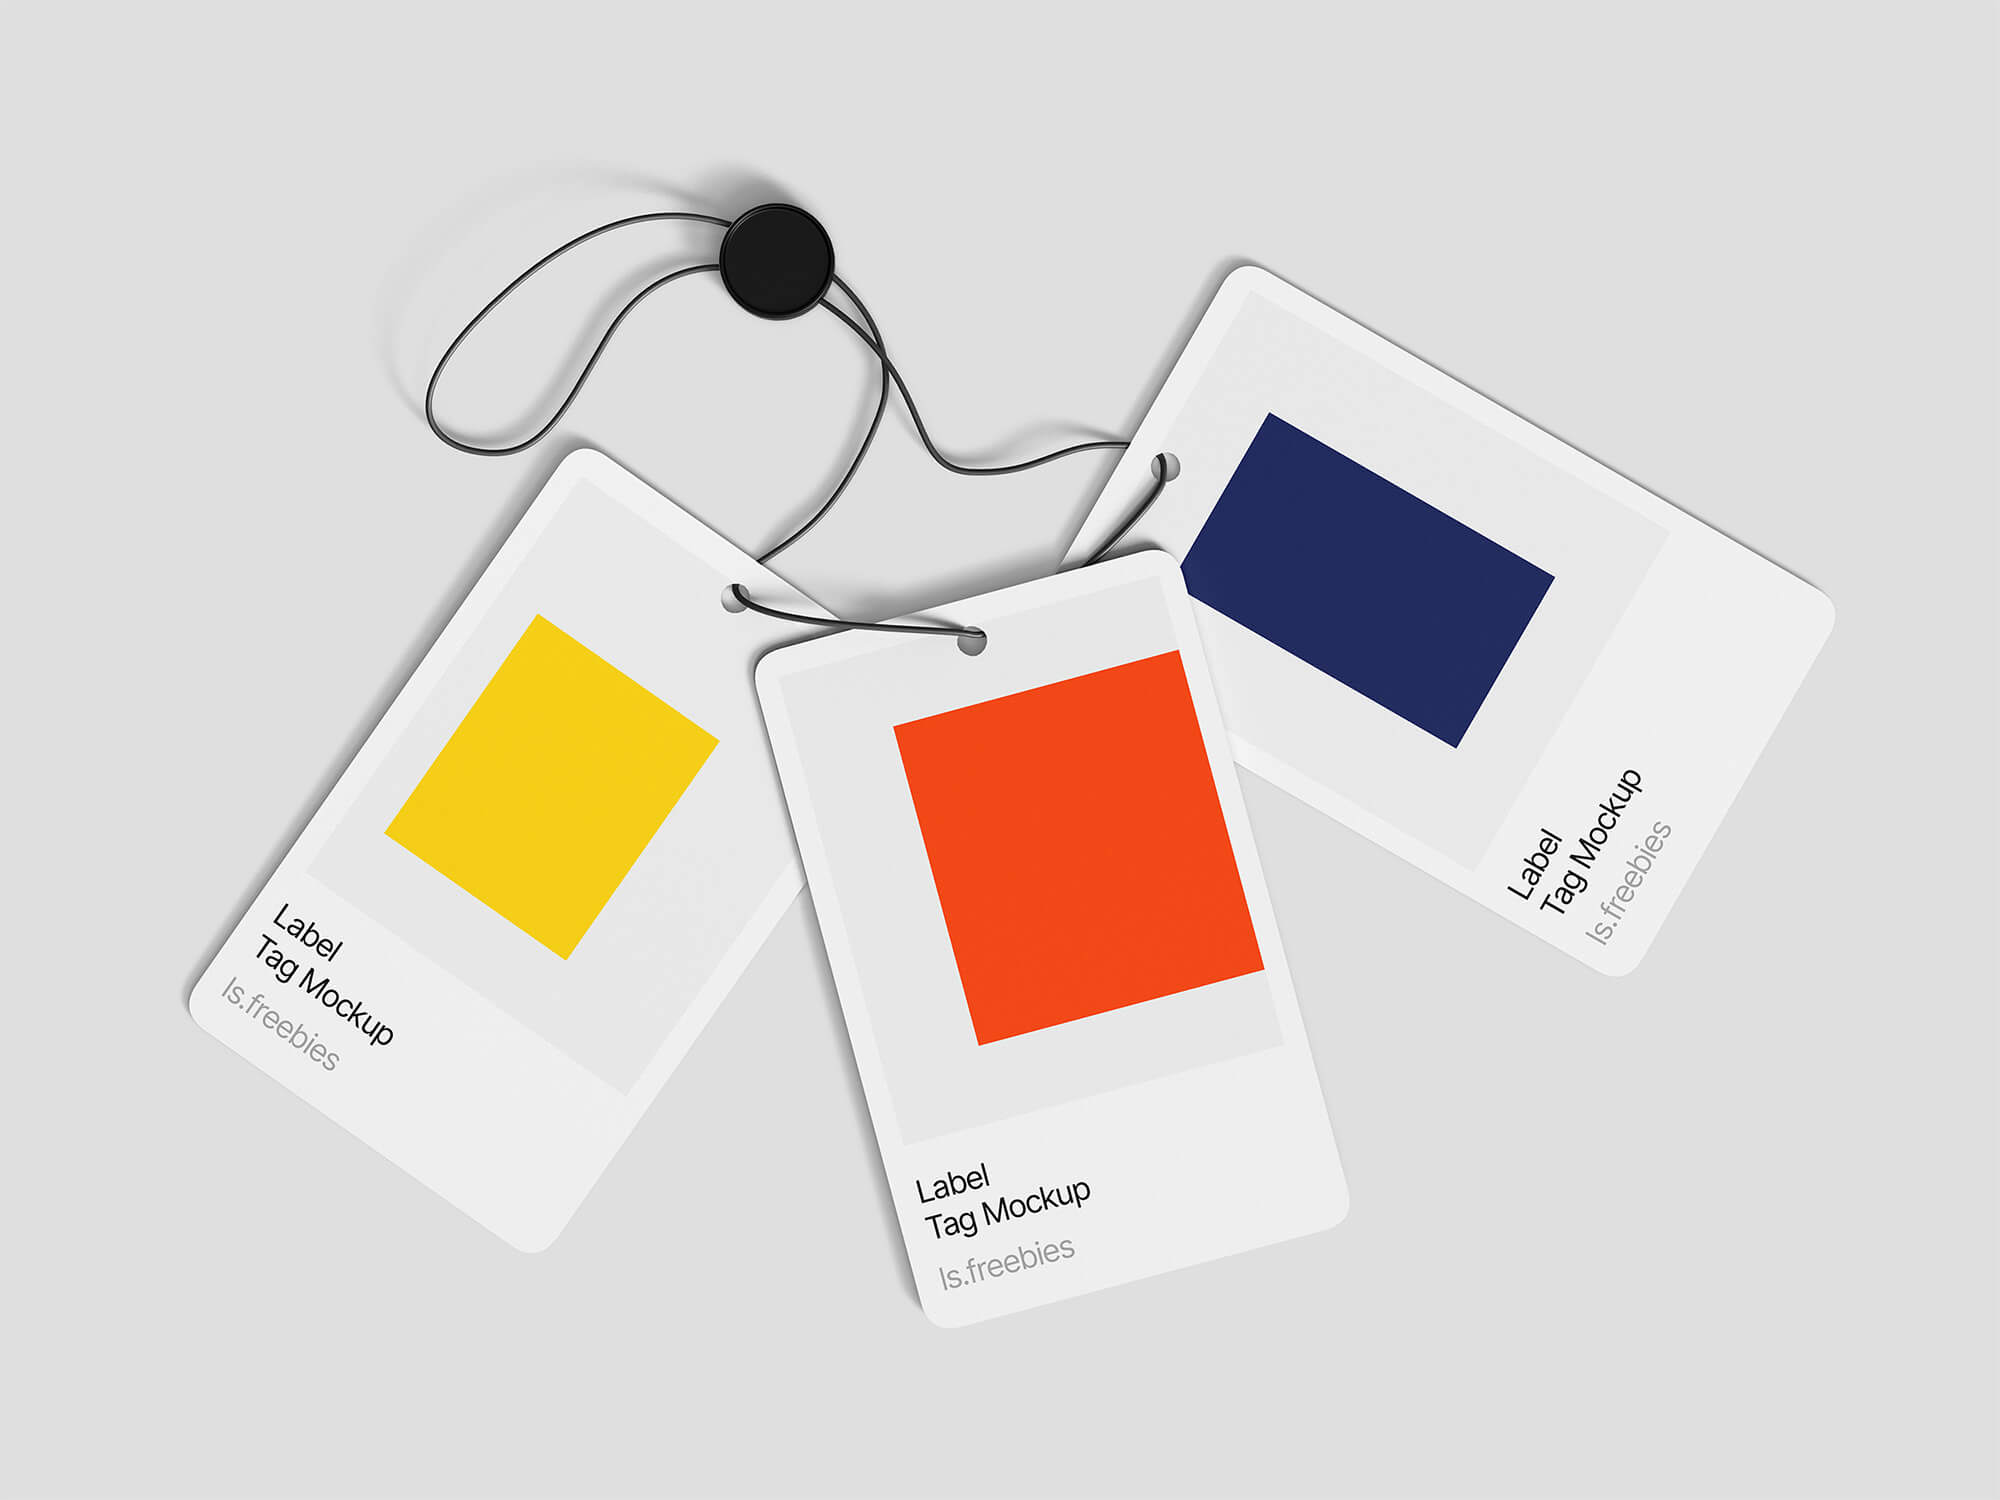 3 Label Tag Mockups